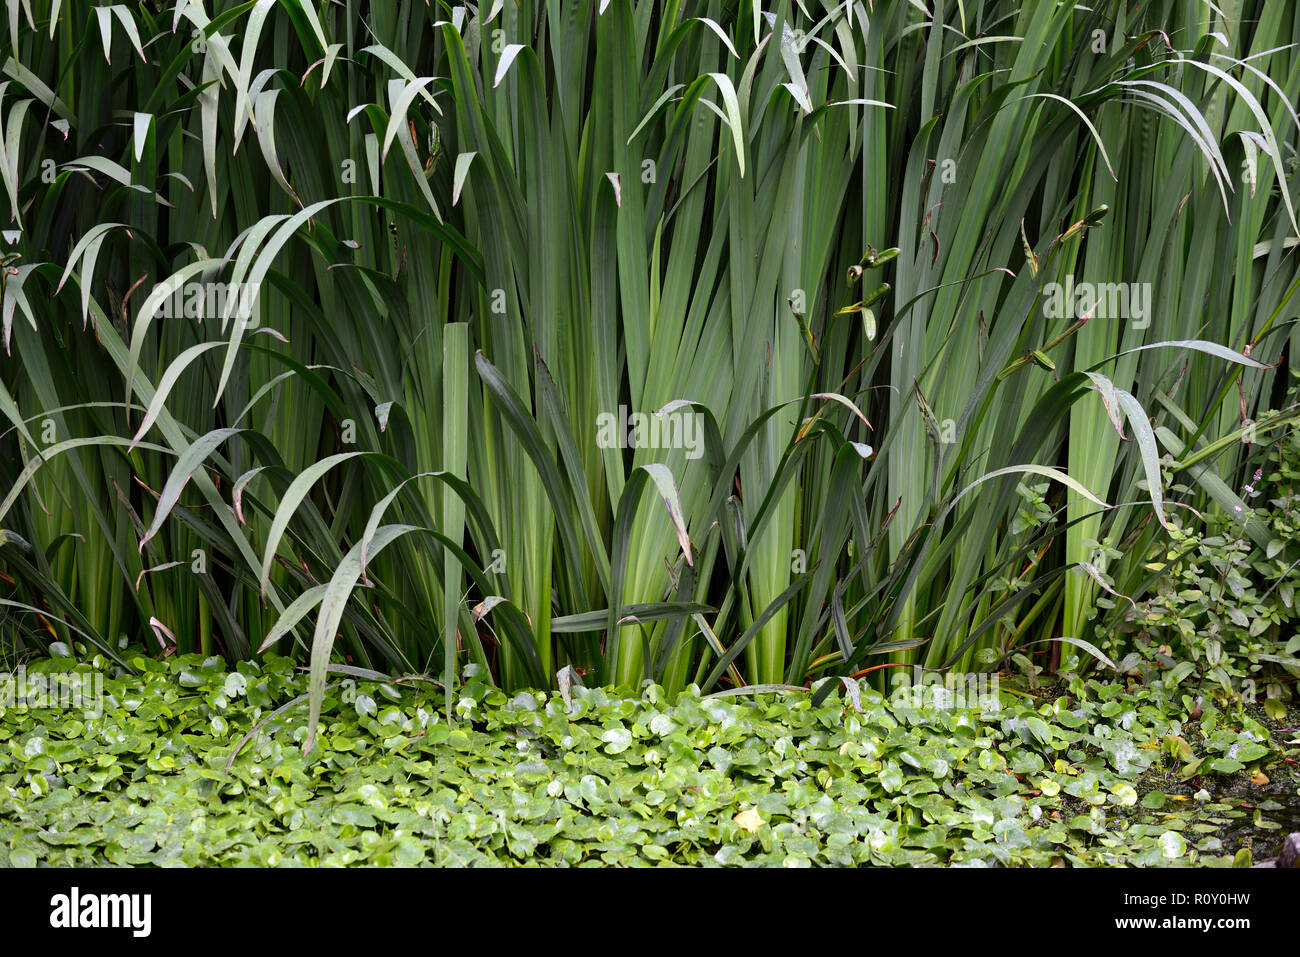 flag iris,stem,stems,dense,invasive,plant,plants,pond,ponds,water feature,gardens,RM Floral - Stock Image